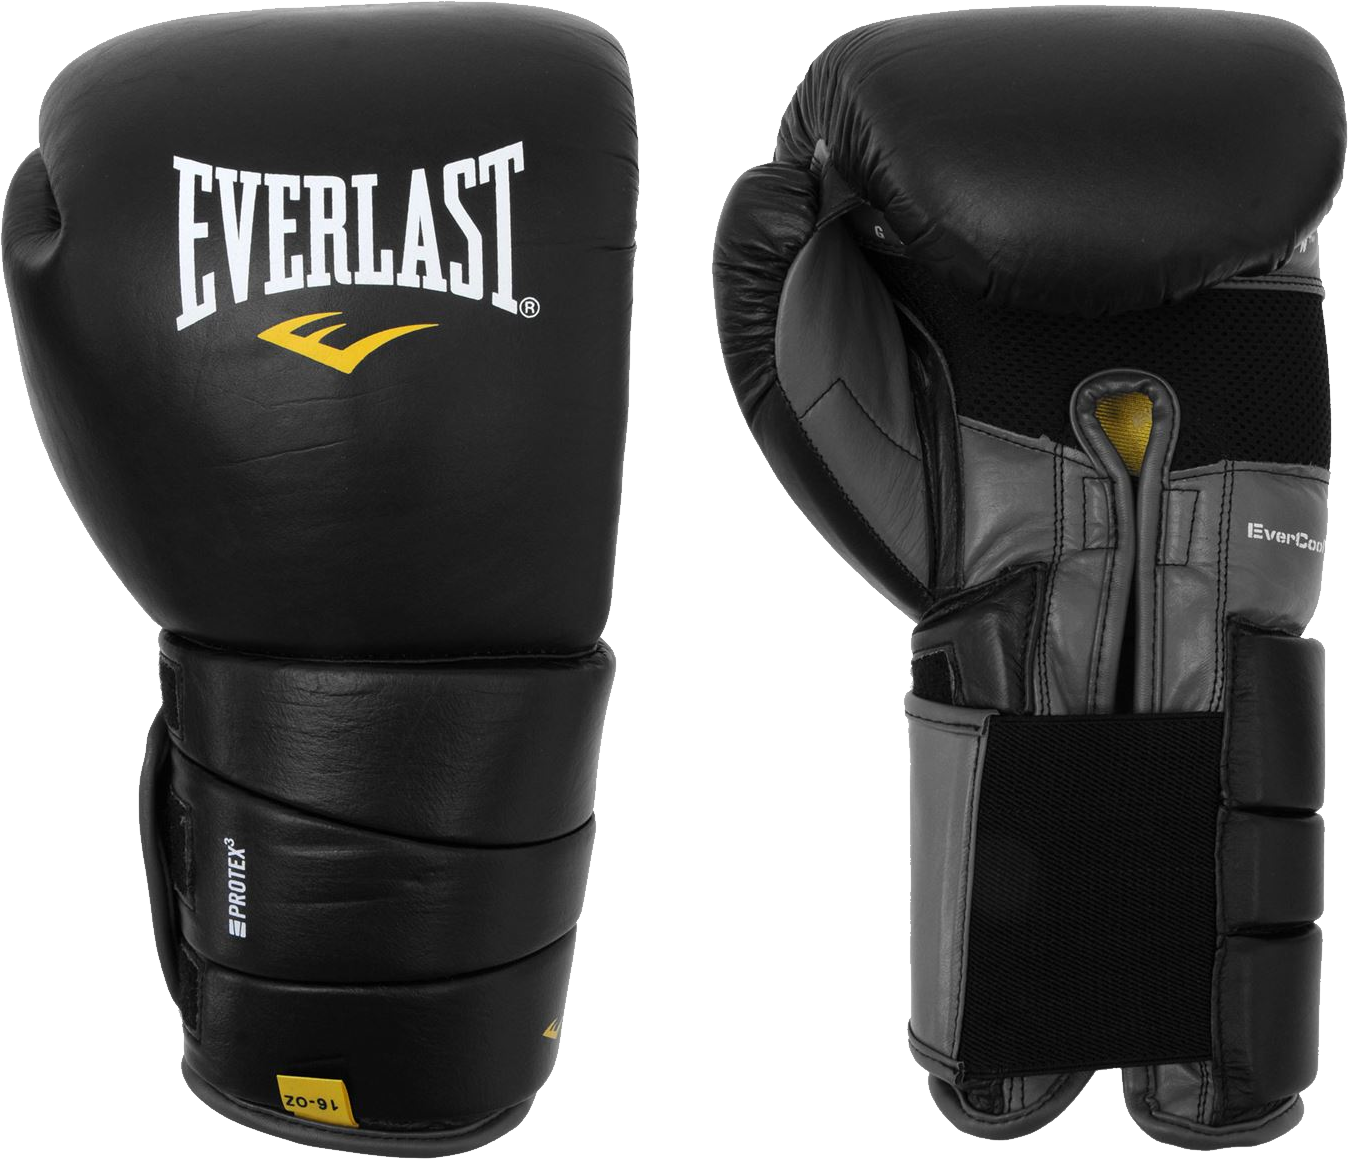 Gloves png images free. Helmet clipart boxing